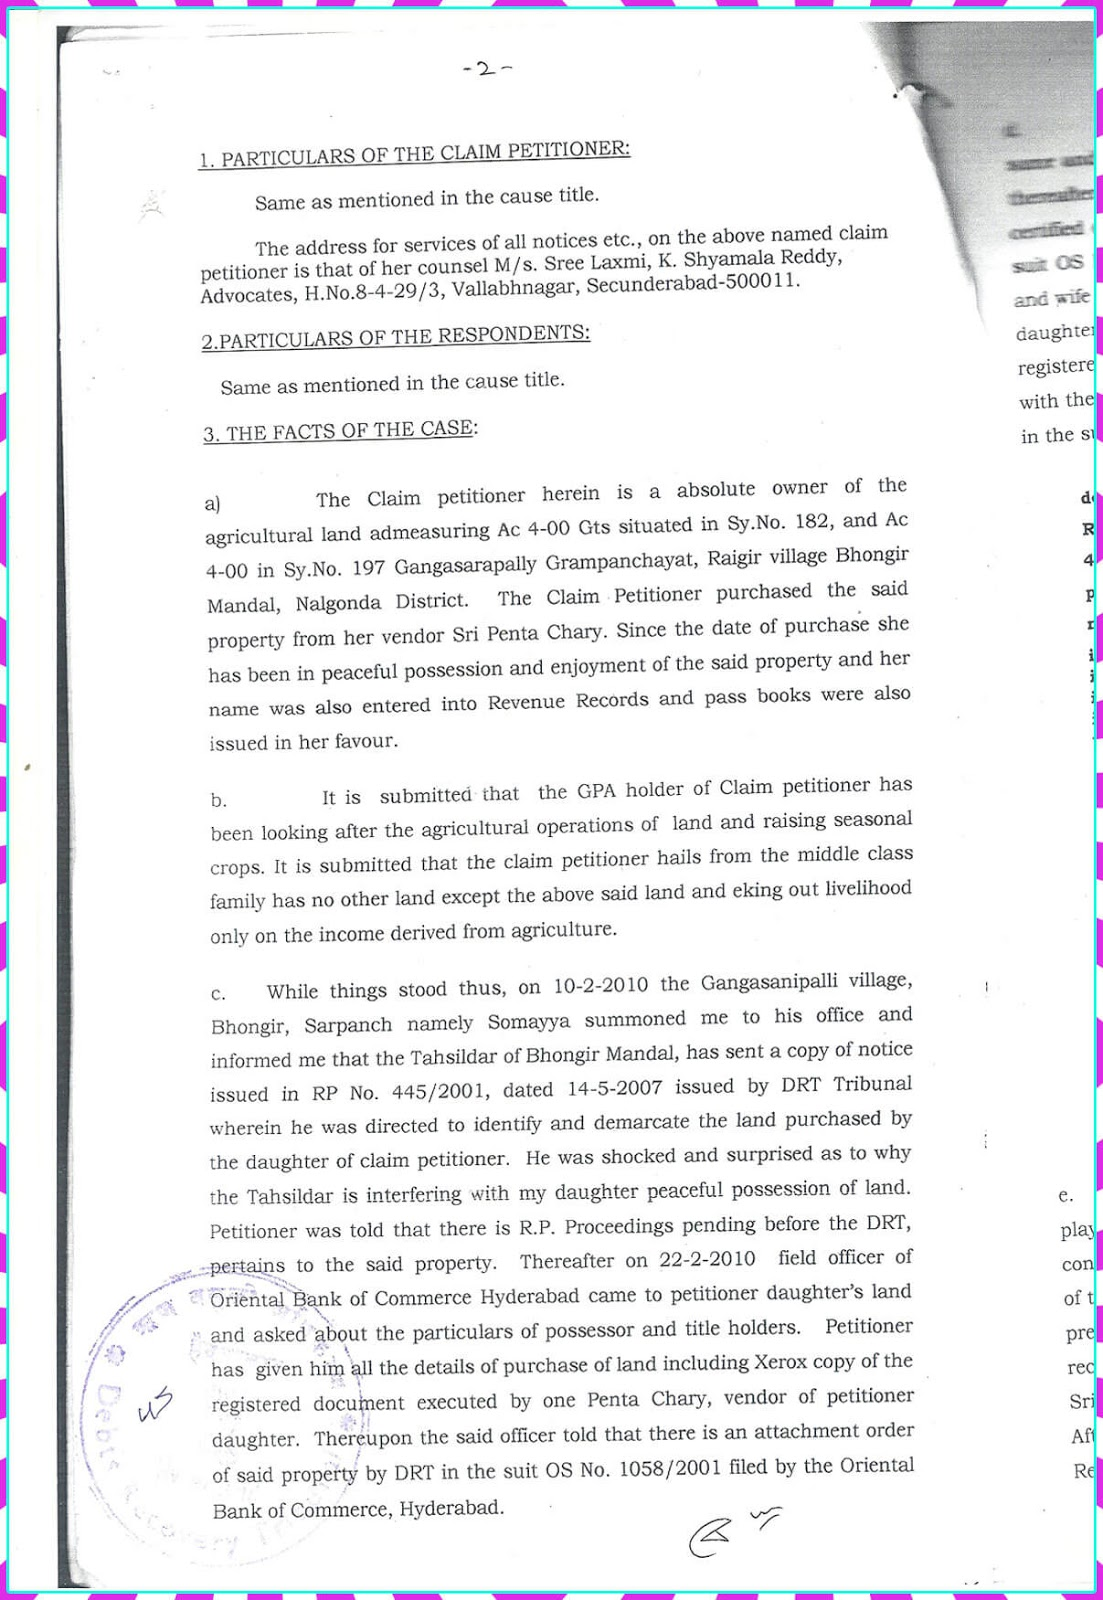 Claim Petition.No. 9 of 2010-D.R.T-1 Hyderabad-2